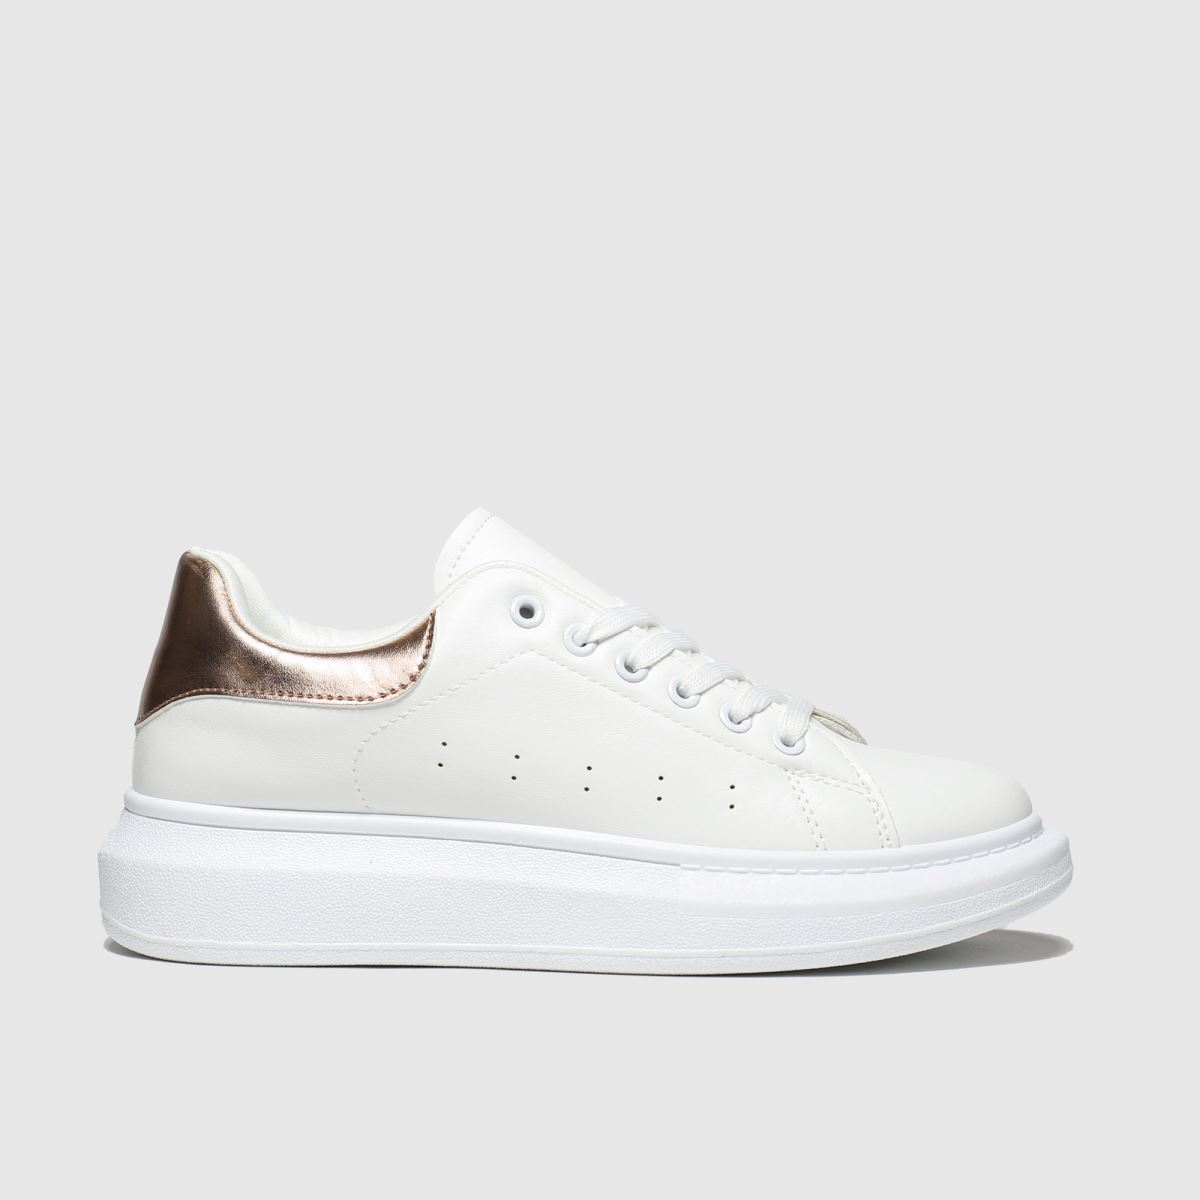 schuh Schuh White Breezy Lace Up Trainer Trainers